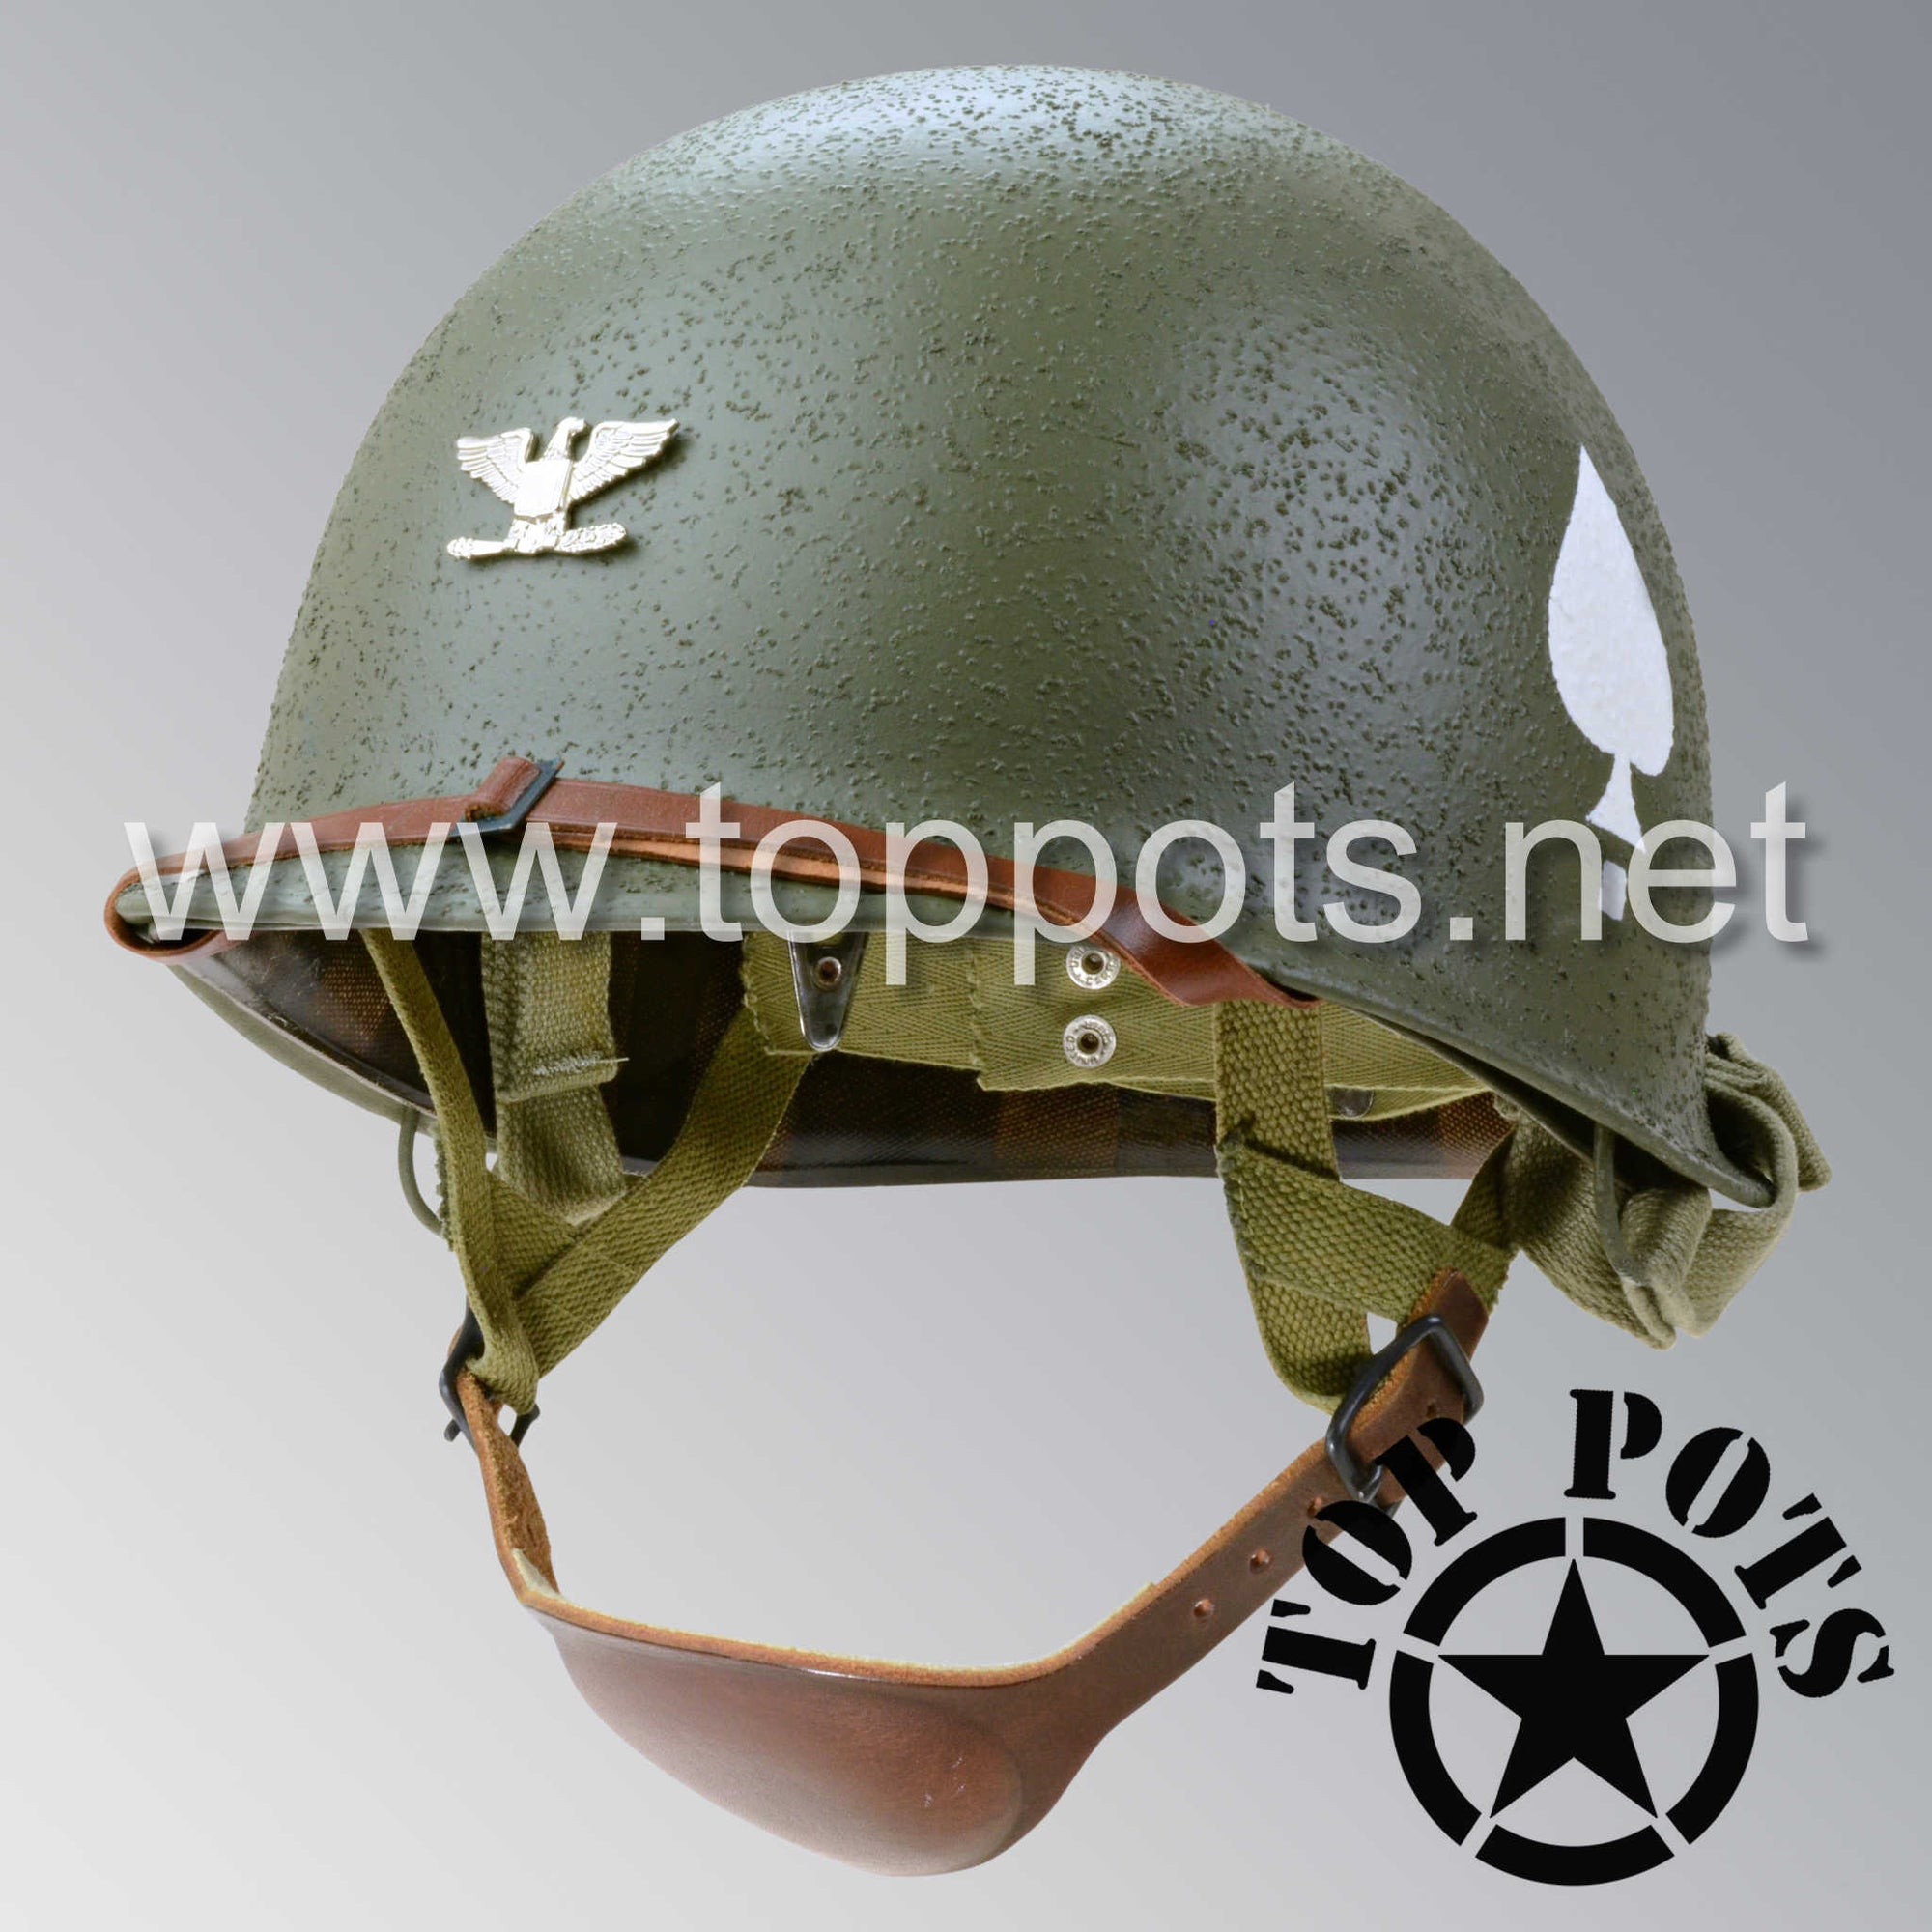 Image 1 of WWII US Army Restored Original M2 Paratrooper Airborne Helmet D Bale Shell and Liner with 506th 2nd Battalion PIR Lt. Colonel Metal Officer Emblem